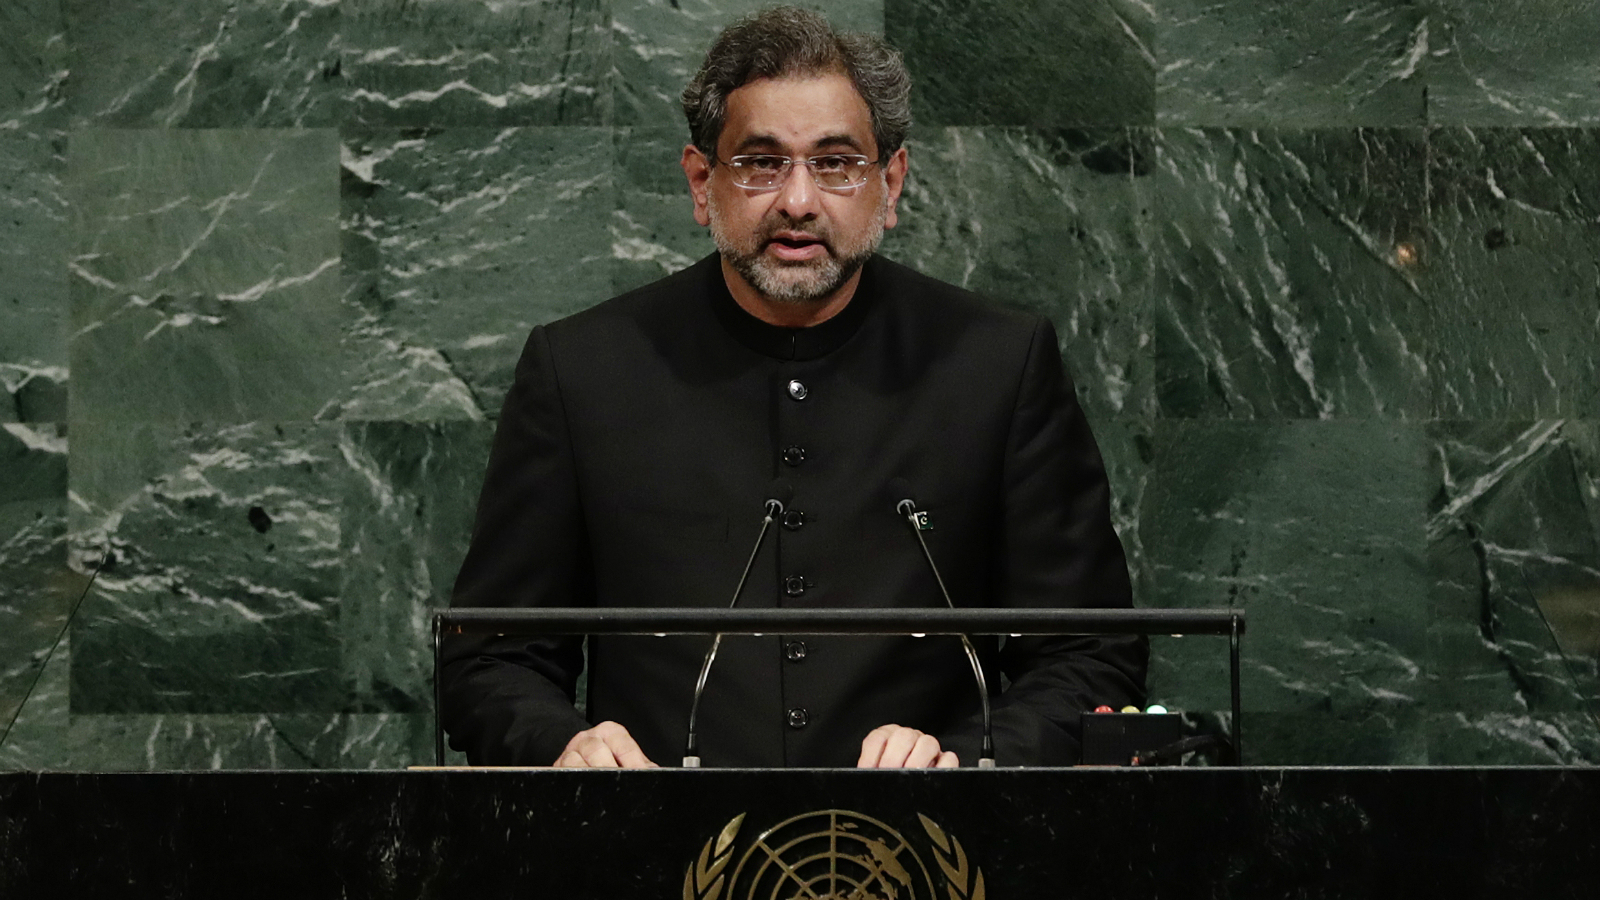 Prime minister of Pakistan Shahid Khaqan Abbasi addresses the United Nations General Assembly Thursday, Sept. 21, 2017, at the United Nations headquarters.